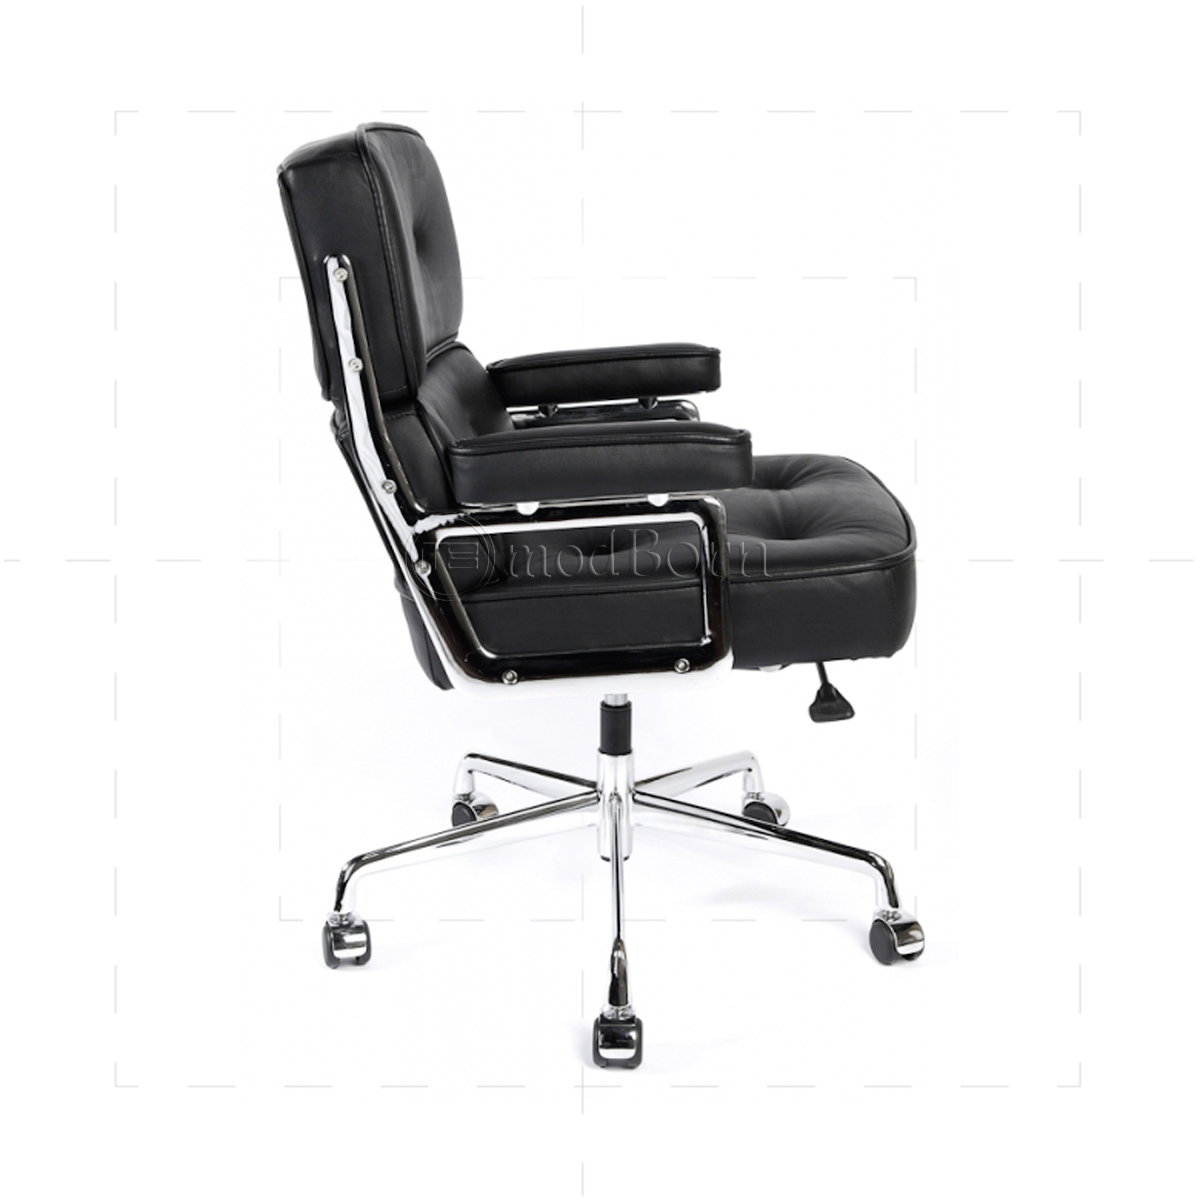 EA104 Eames Style Office Lobby Black Leather Executive Chair : charles eames es104 office chair 2 1200x1200 from www.modborn.com size 1200 x 1200 jpeg 329kB